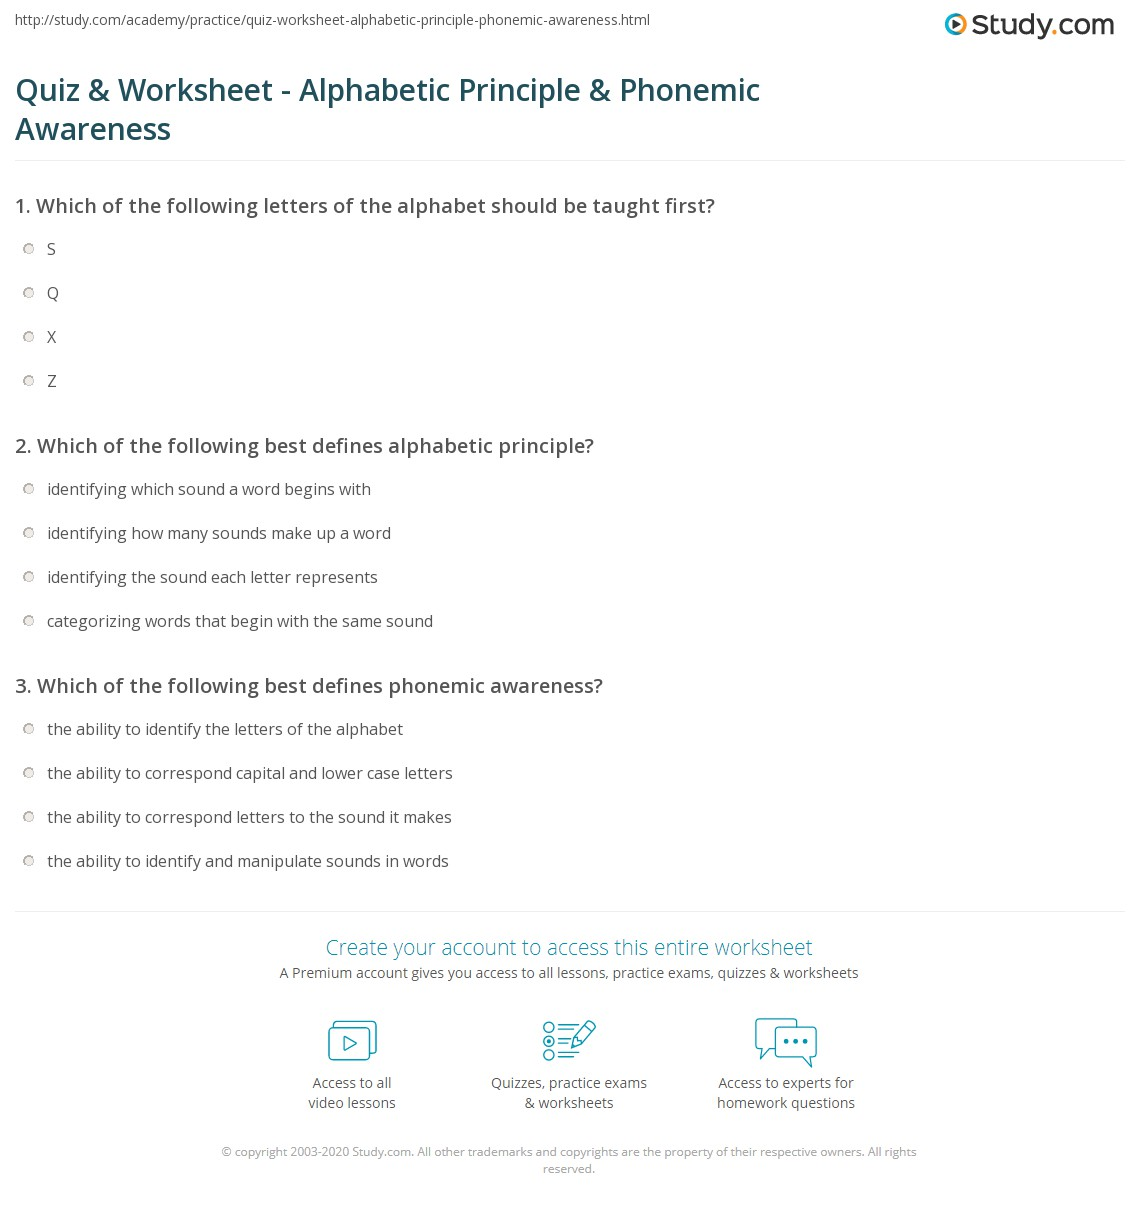 hight resolution of Quiz \u0026 Worksheet - Alphabetic Principle \u0026 Phonemic Awareness   Study.com